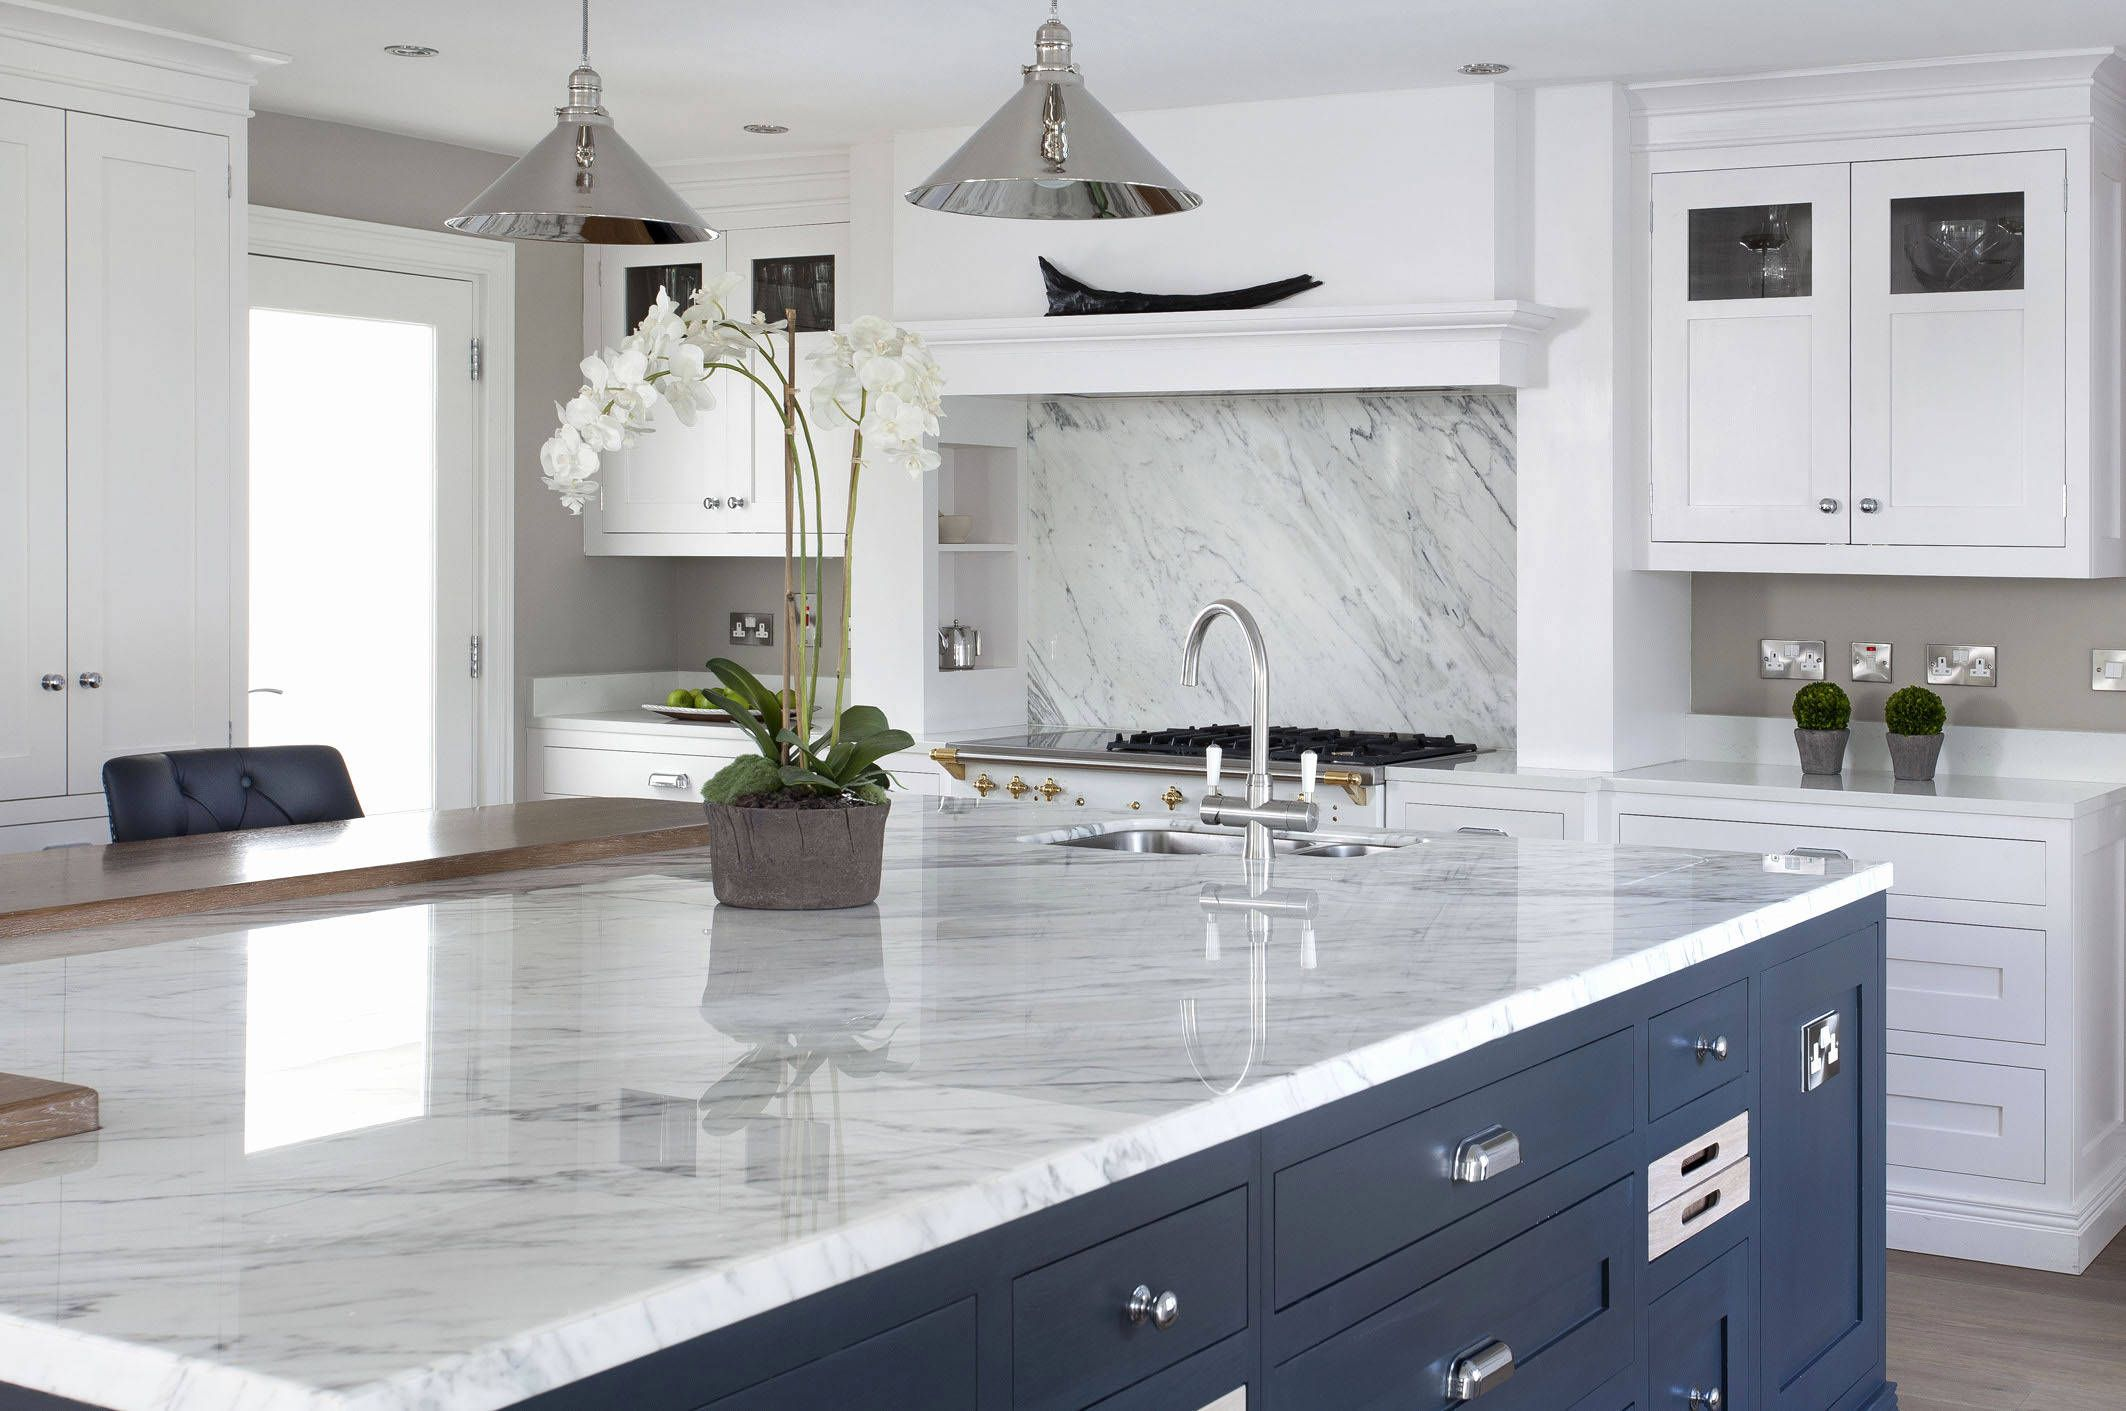 Quartz Countertops With Blue Veins Beautiful Stone